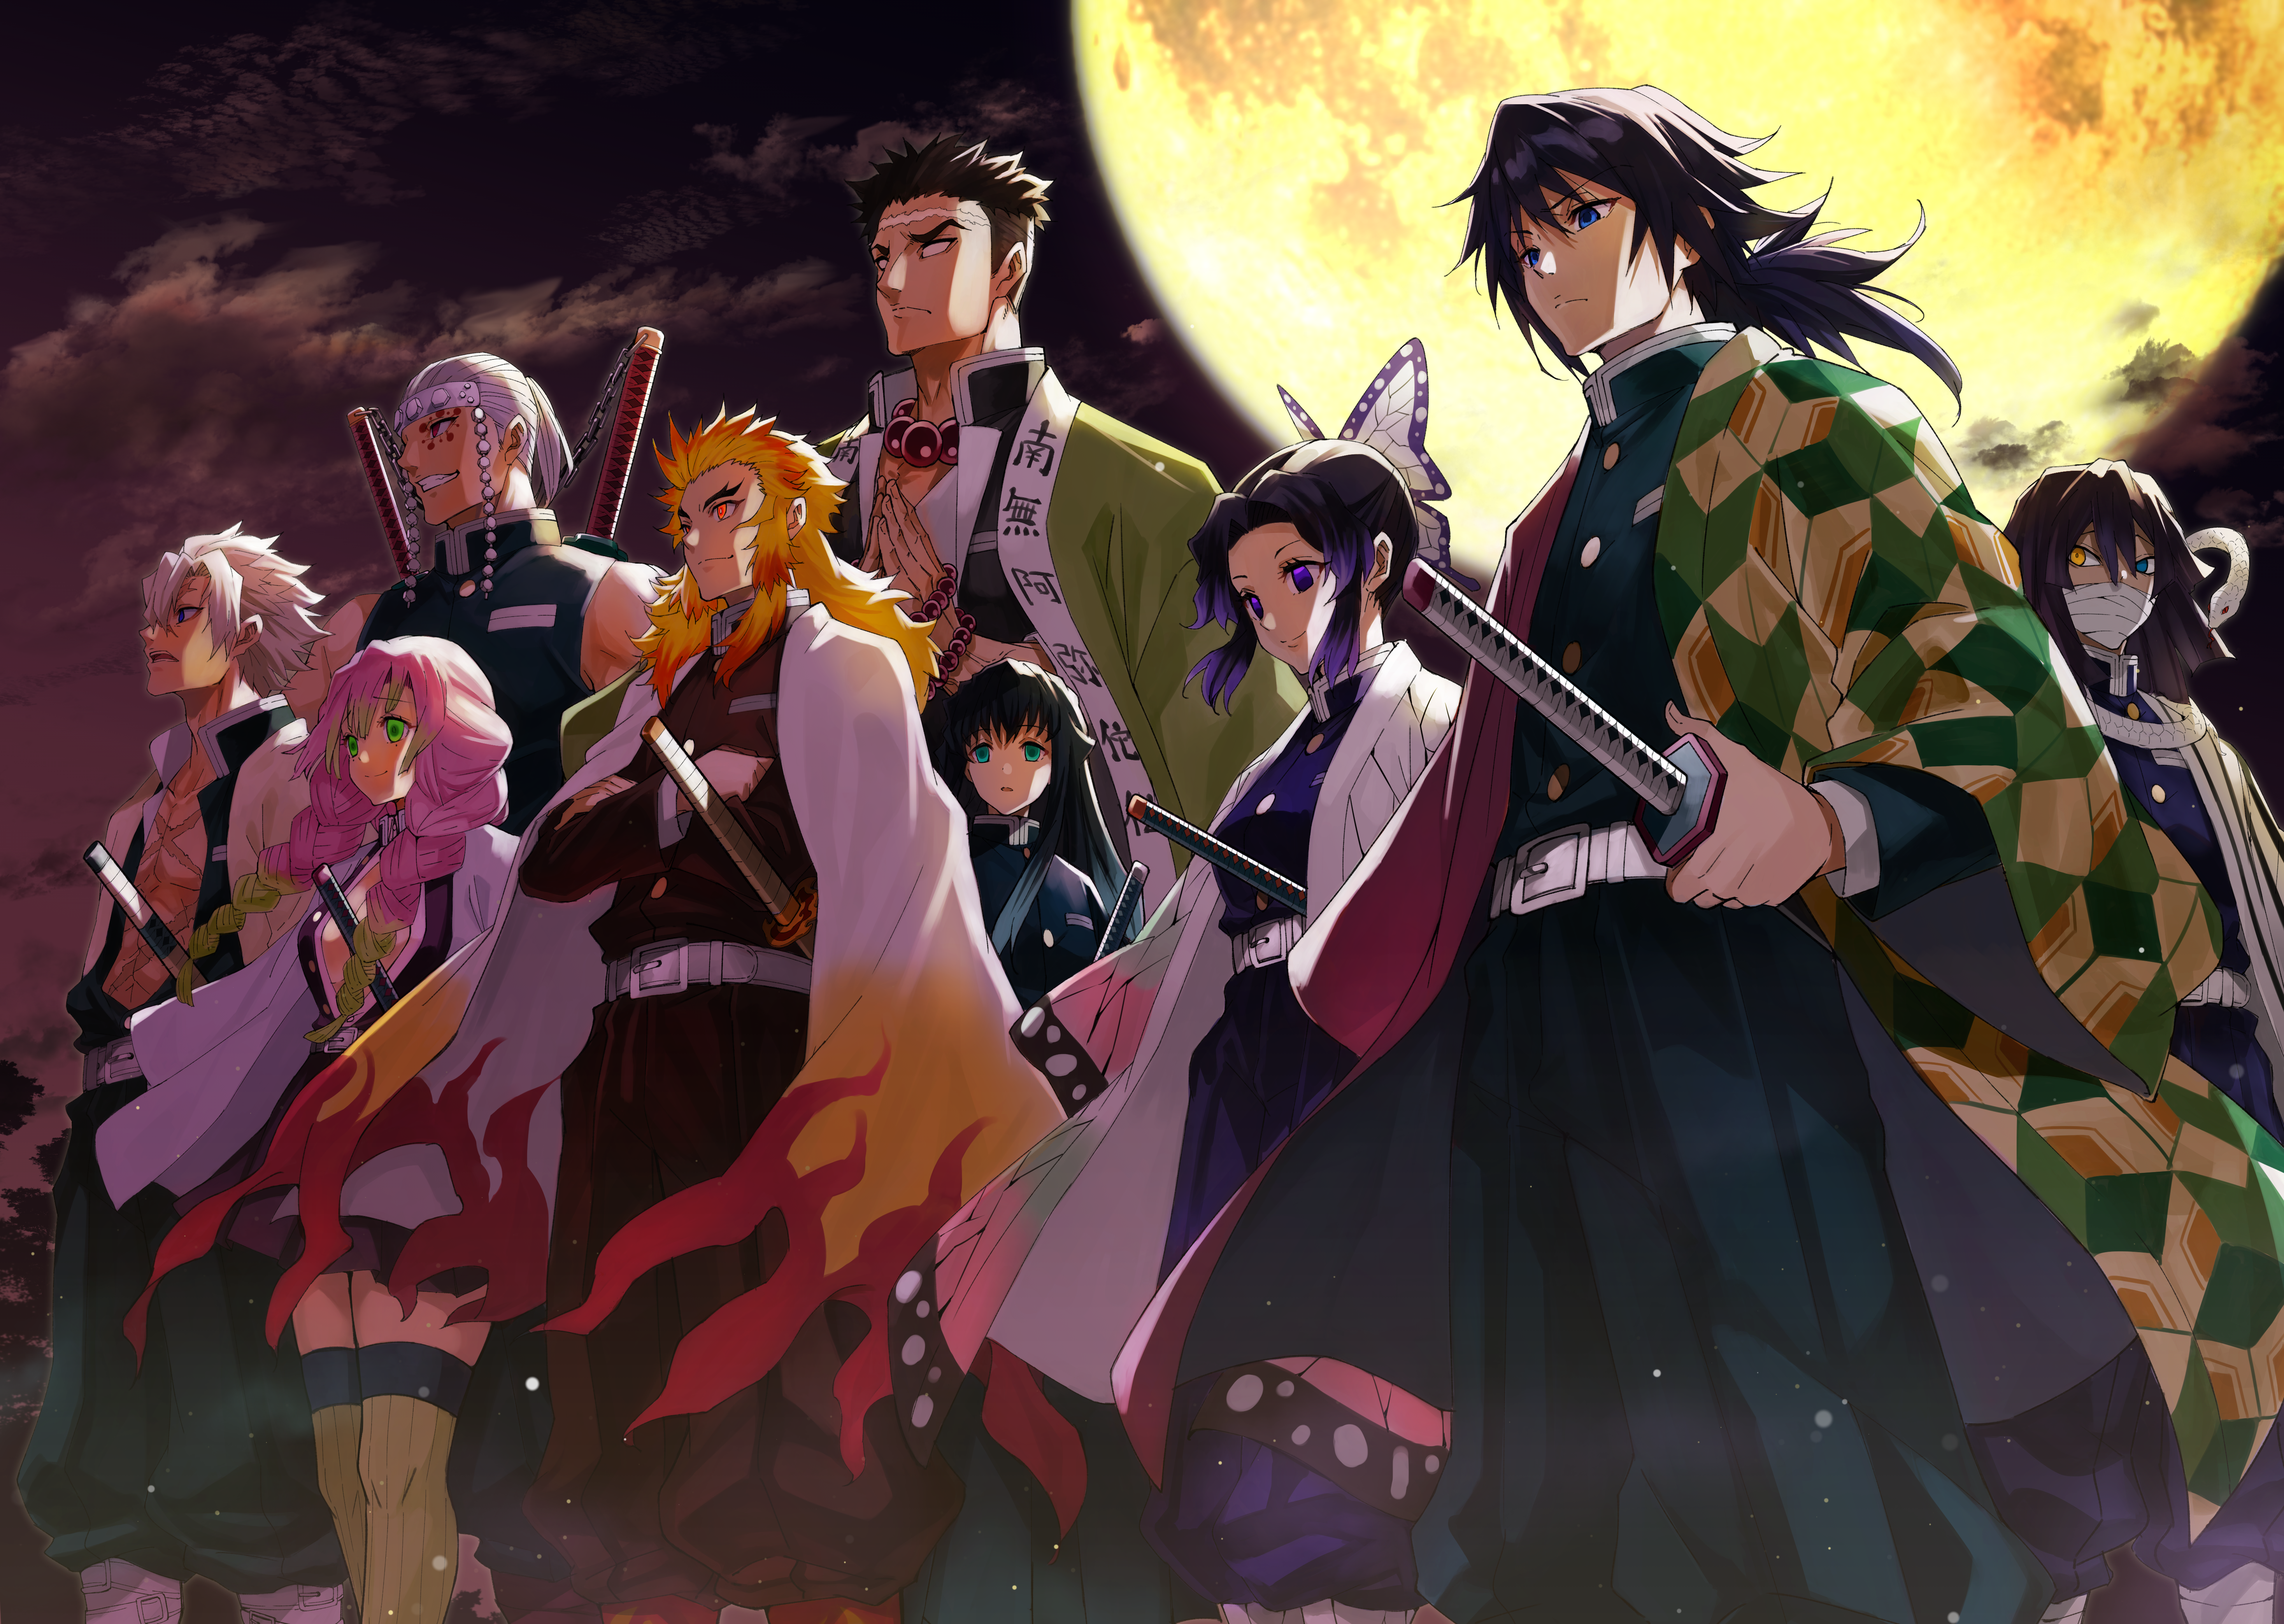 Demon Slayer Kimetsu No Yaiba 5k Retina Ultra Hd Wallpaper Background Image 5870x4175 Id 1079551 Wallpaper Abyss Include original source for the picture in the comments. wallpaper abyss alpha coders